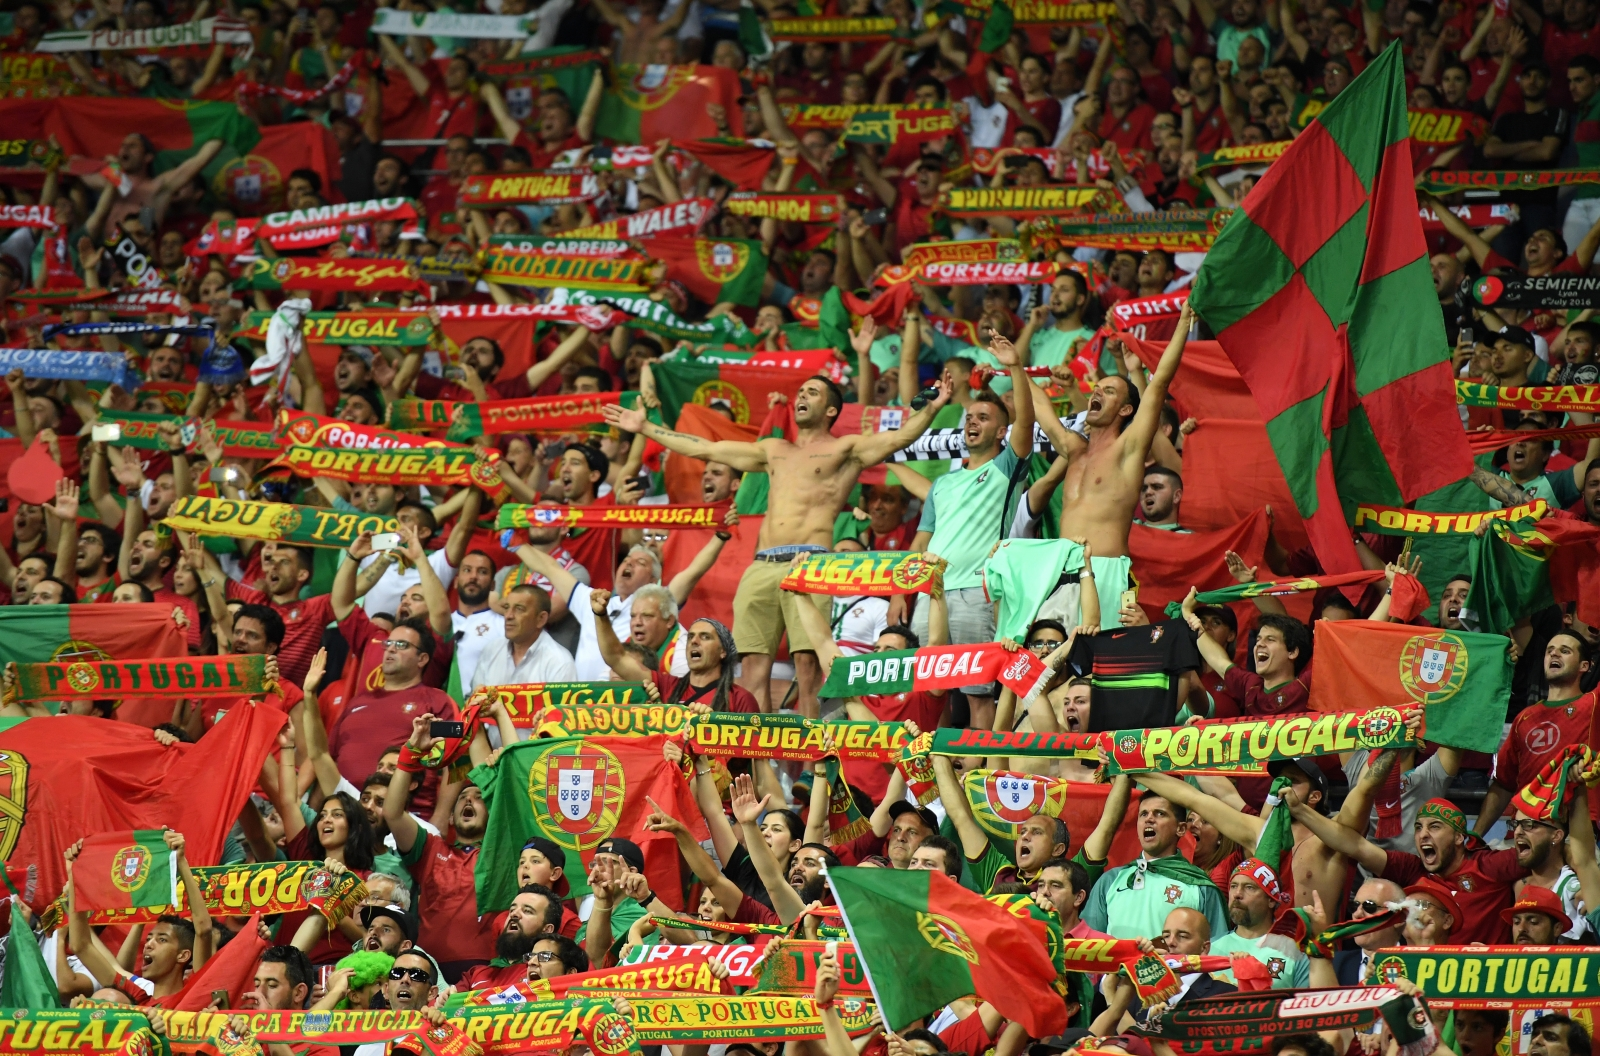 Portugal fans cheer their side on